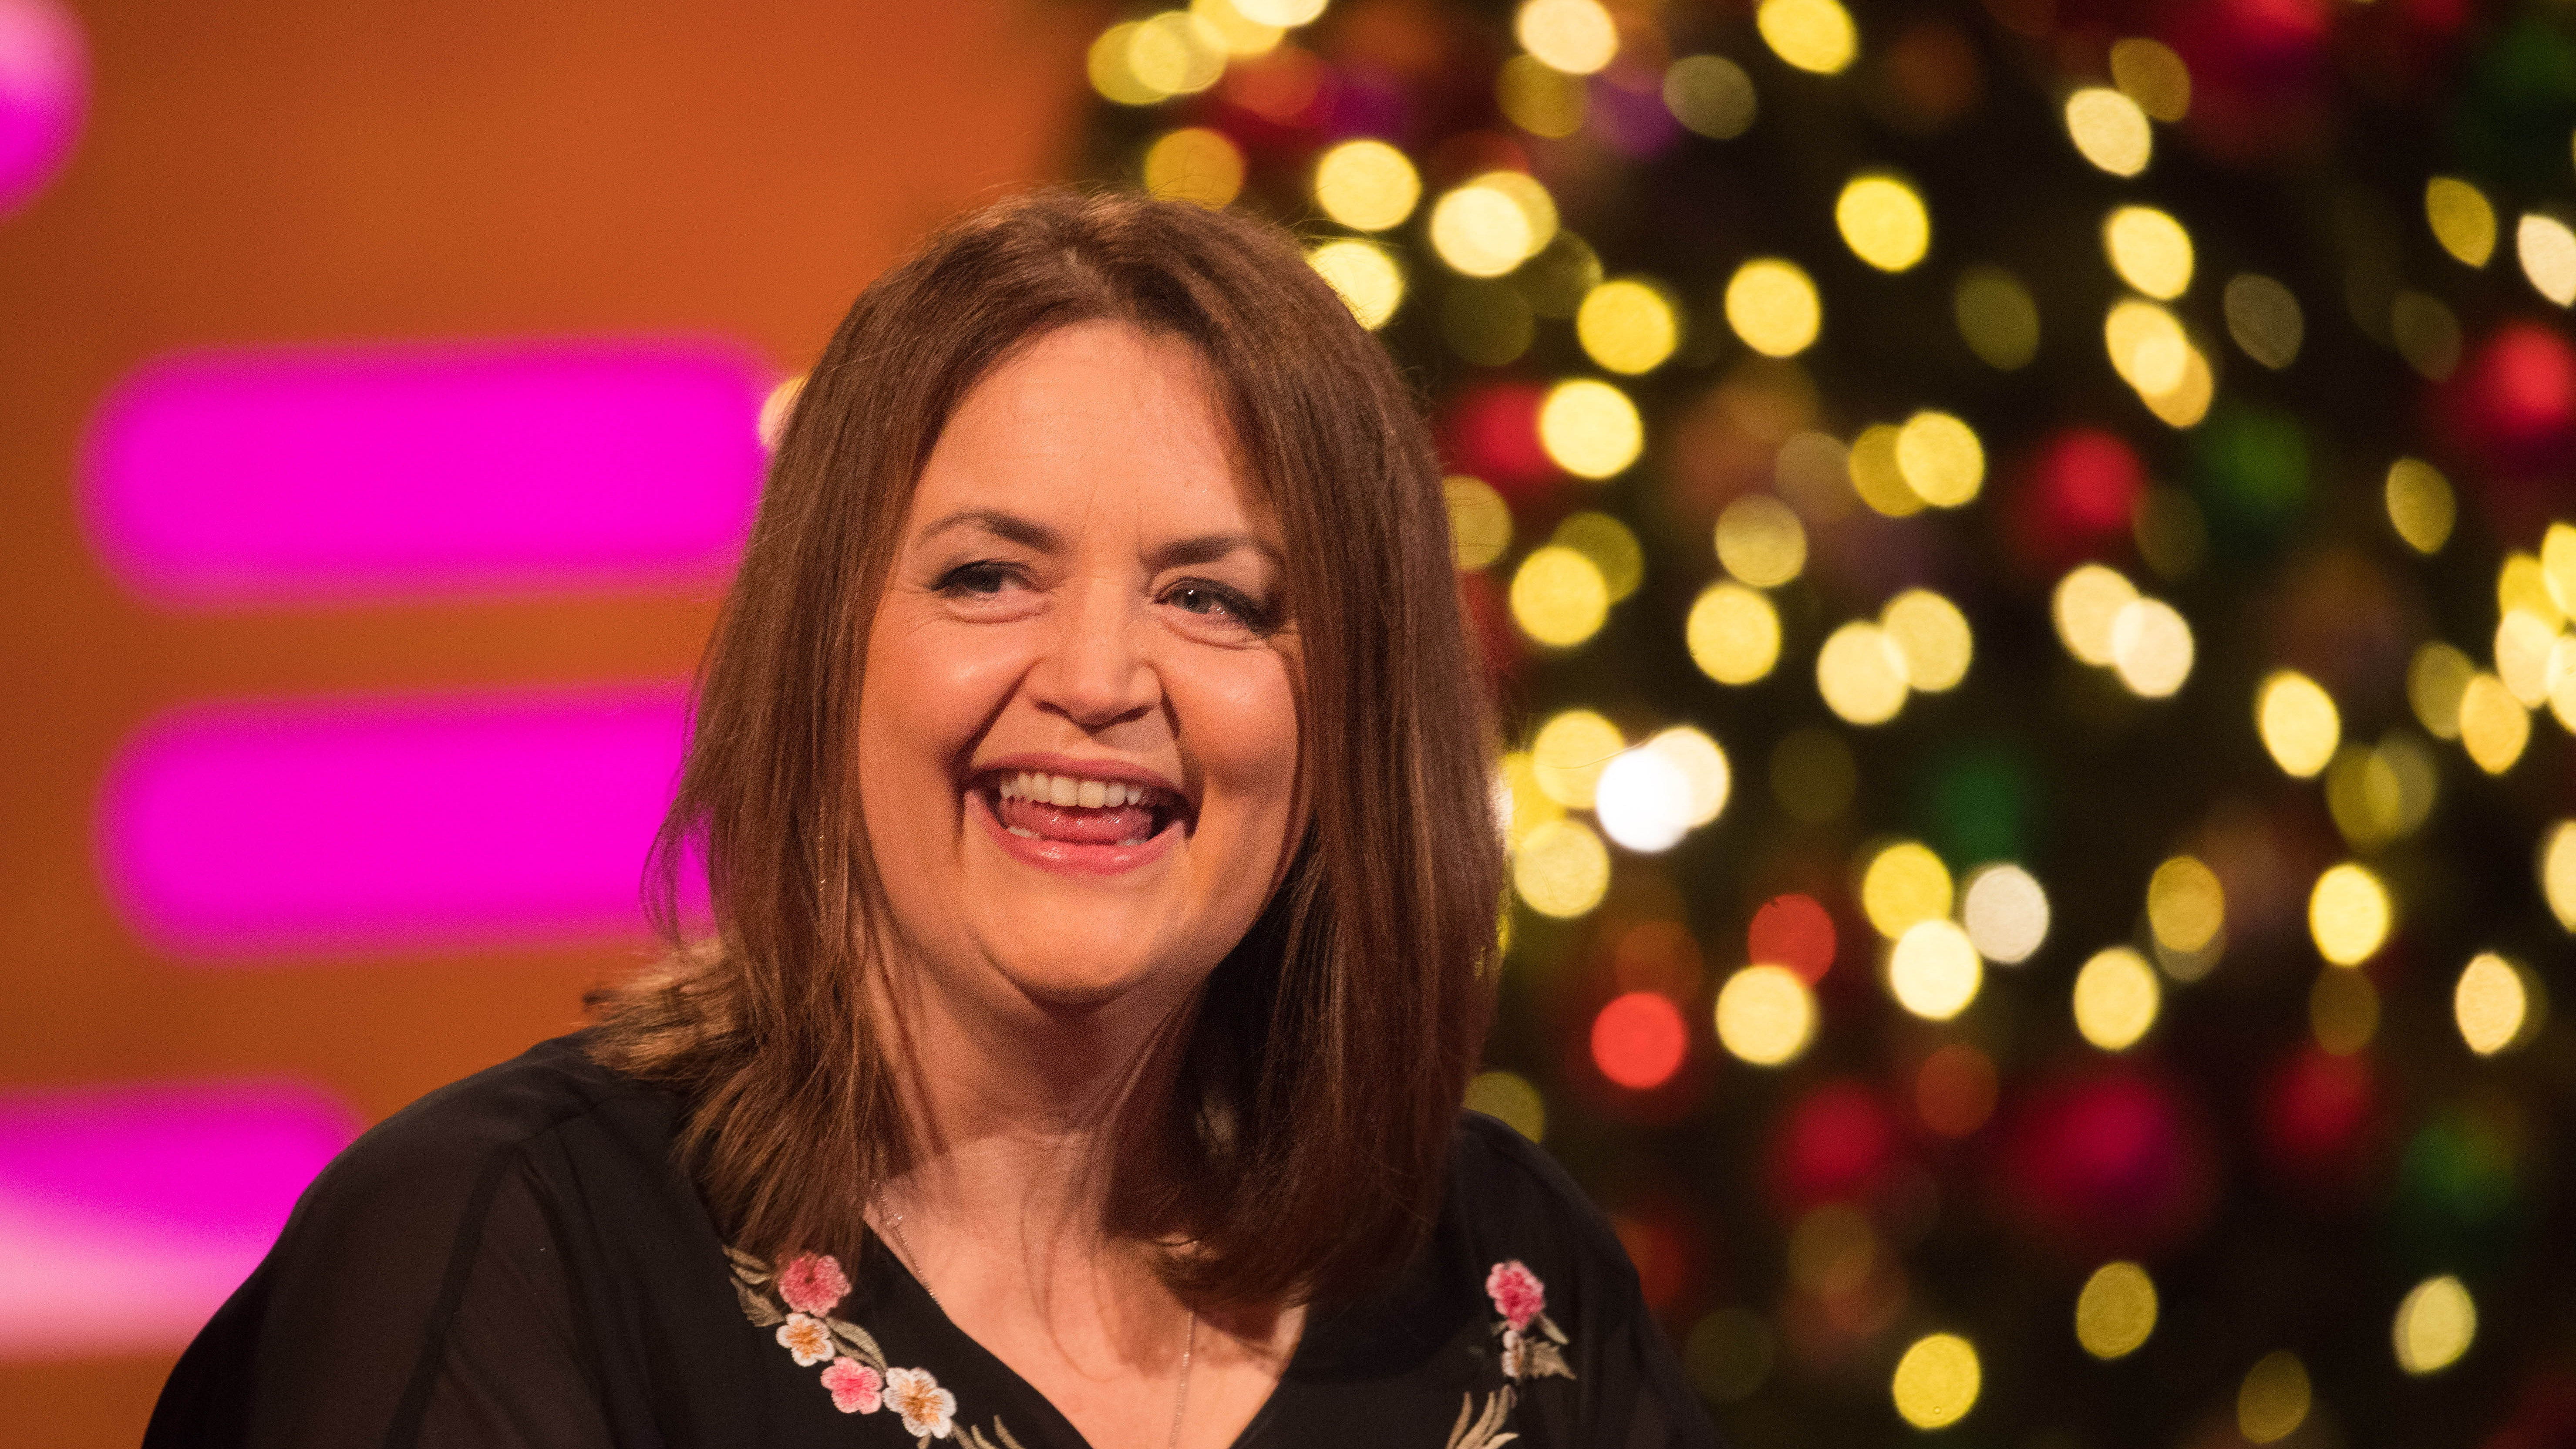 Alison Steadman Movies And Tv Shows ruth jones on gavin and stacey return: as nessa i can be as